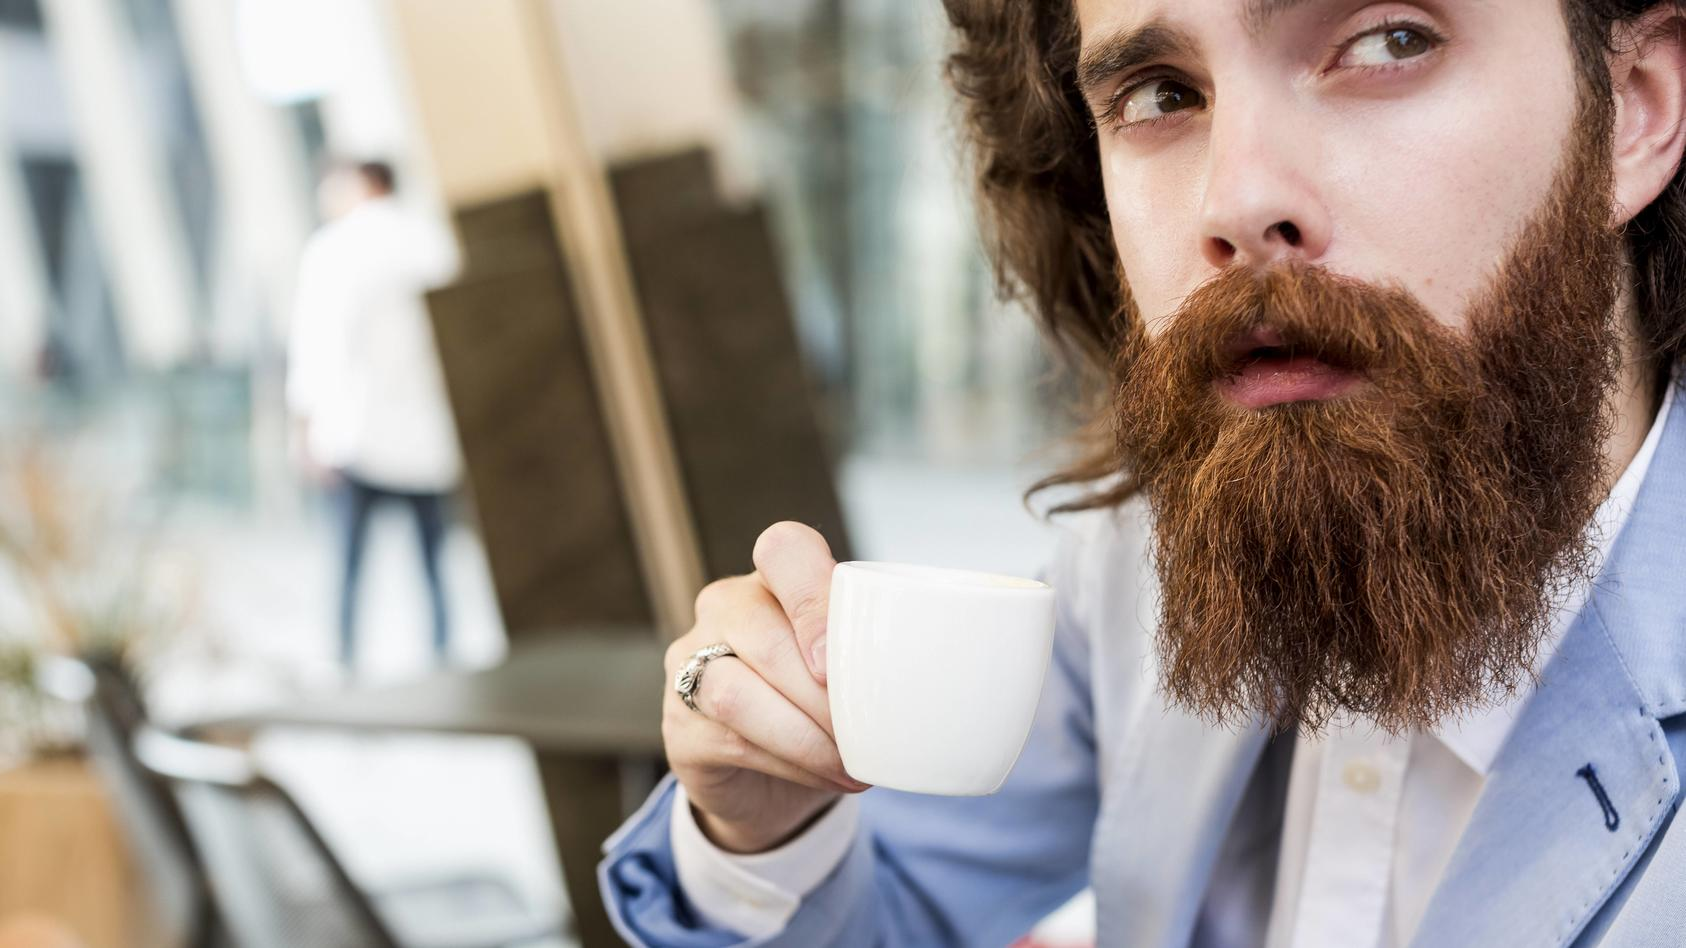 Stylish businessman drinking espresso in a cafe model released Symbolfoto PUBLICATIONxINxGERxSUIxAUT